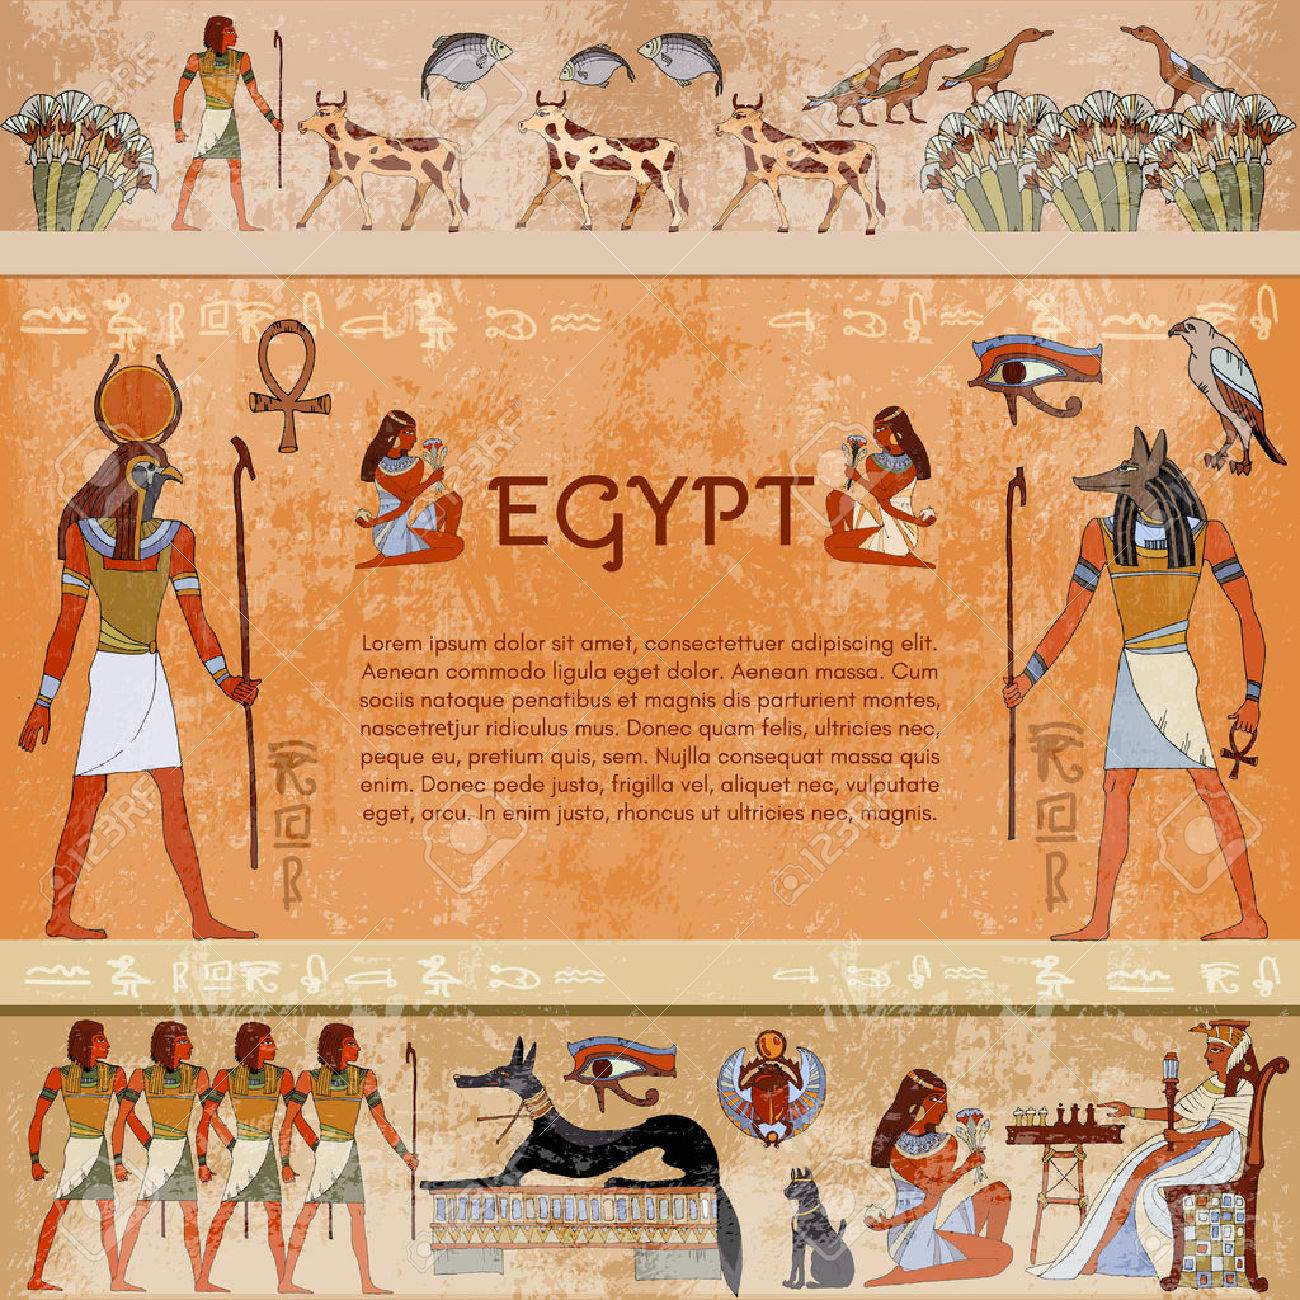 Ancient egypt. Hieroglyphic carvings on the exterior walls of an ancient egyptian temple. Hand drawn vector. Murals ancient Egypt. Grunge ancient Egypt background - 66325369